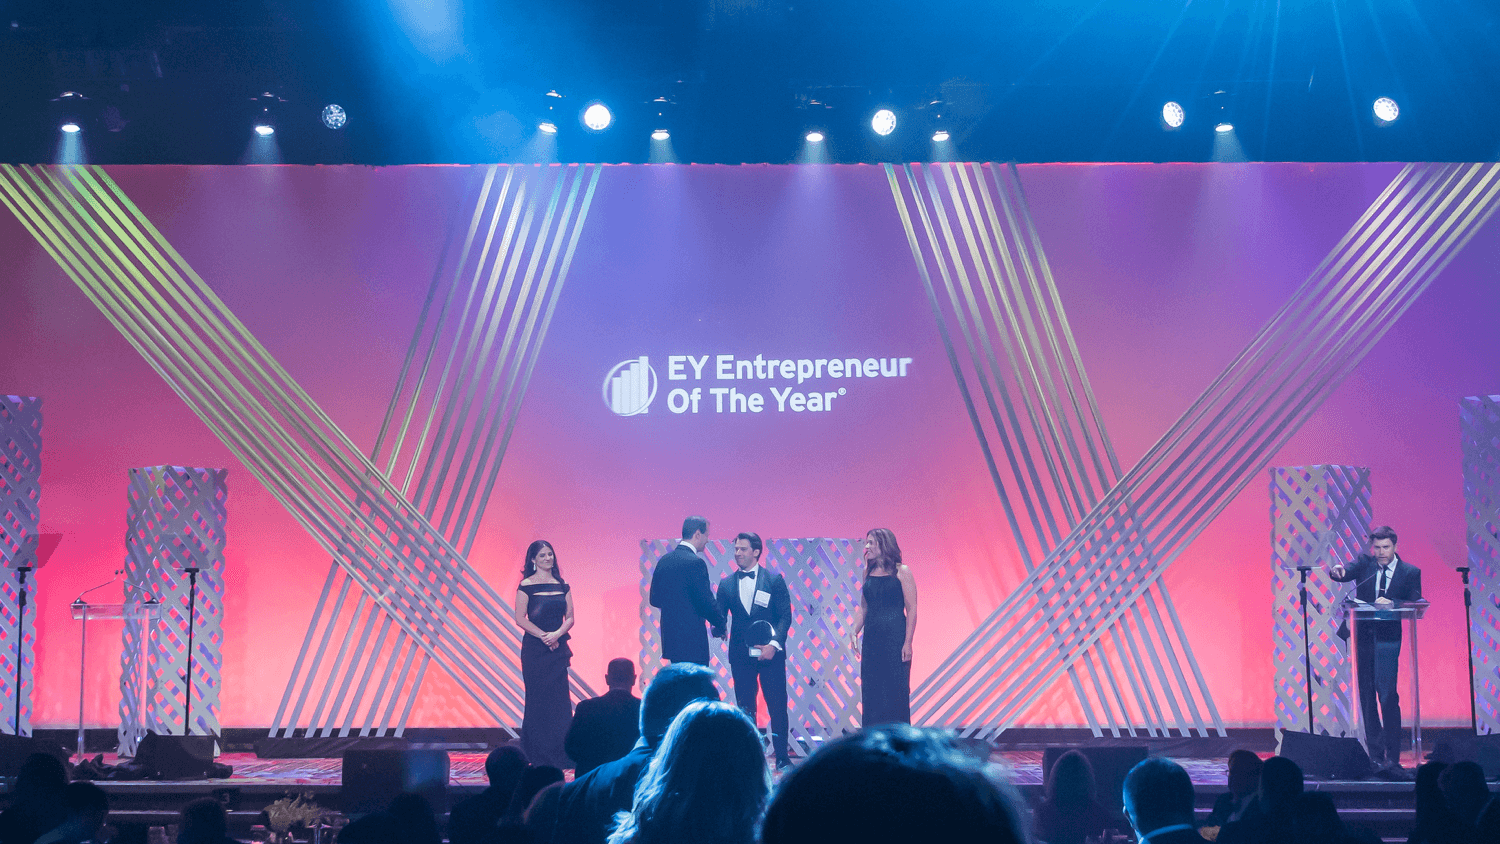 VTS CEO and Co-Founder Nick Romito Wins EY's 2019 Entrepreneur Of The Year Award!